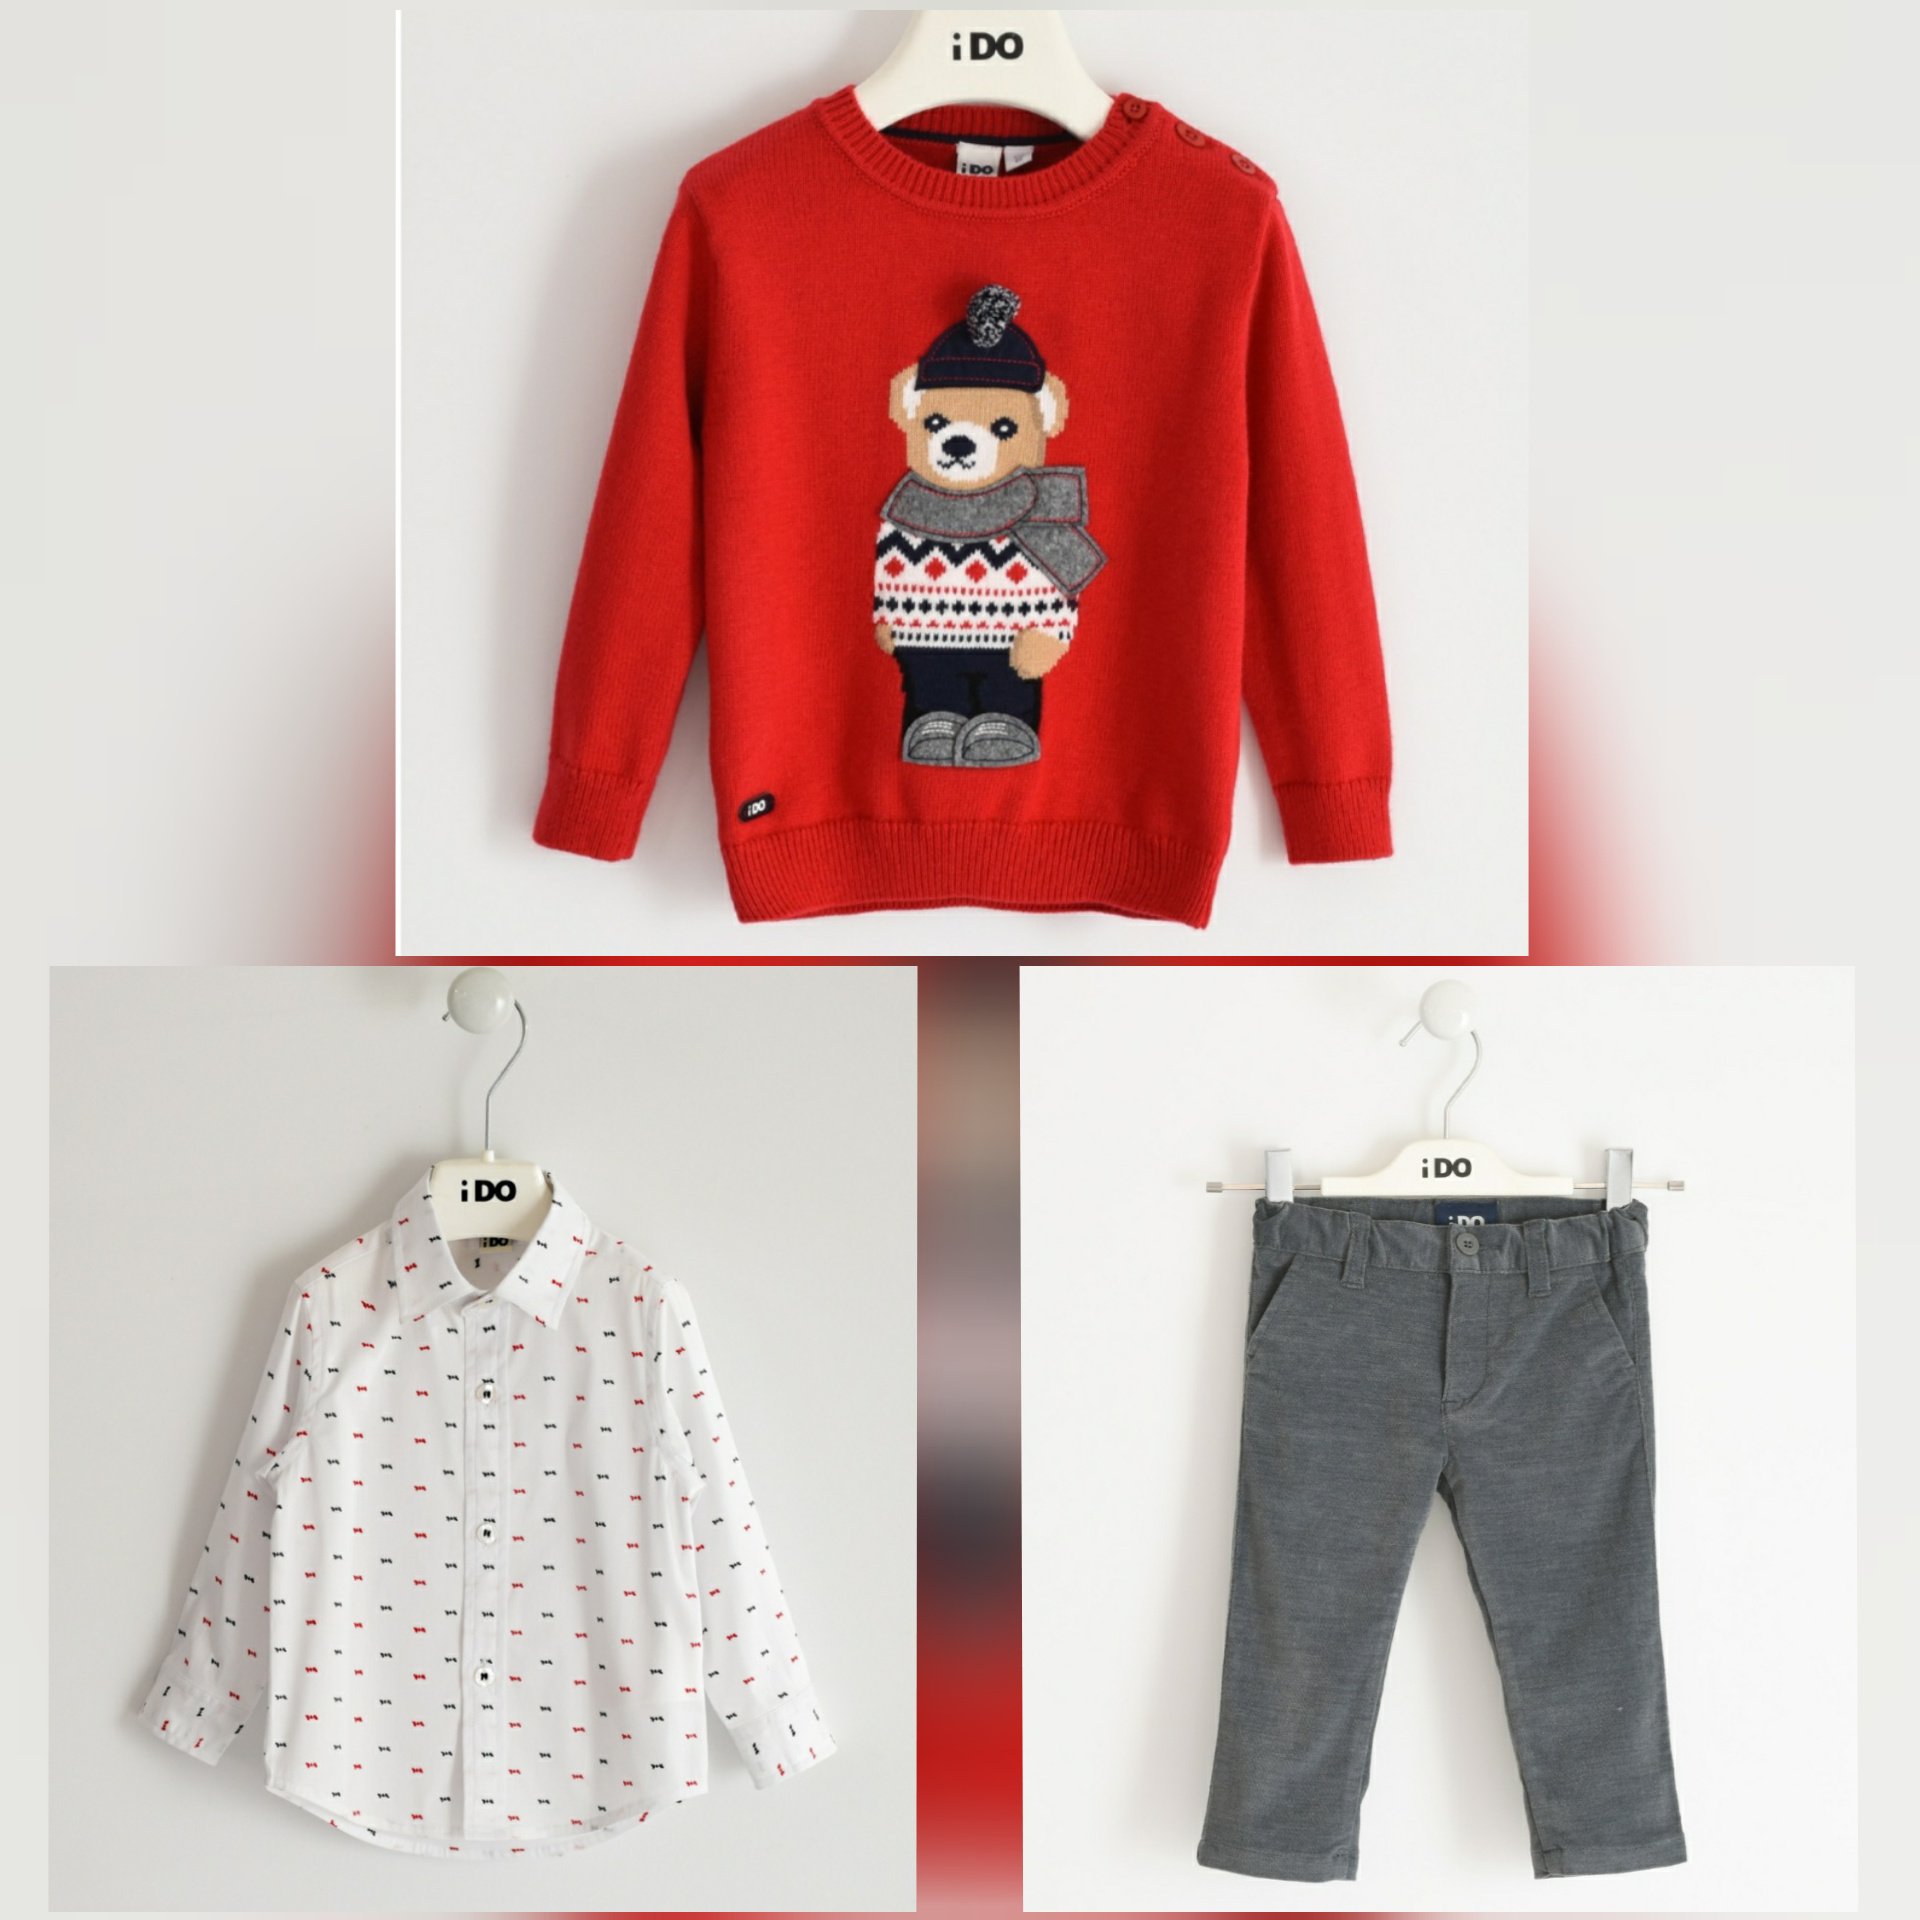 Ido IDO Boys Teddy 3 Piece Set